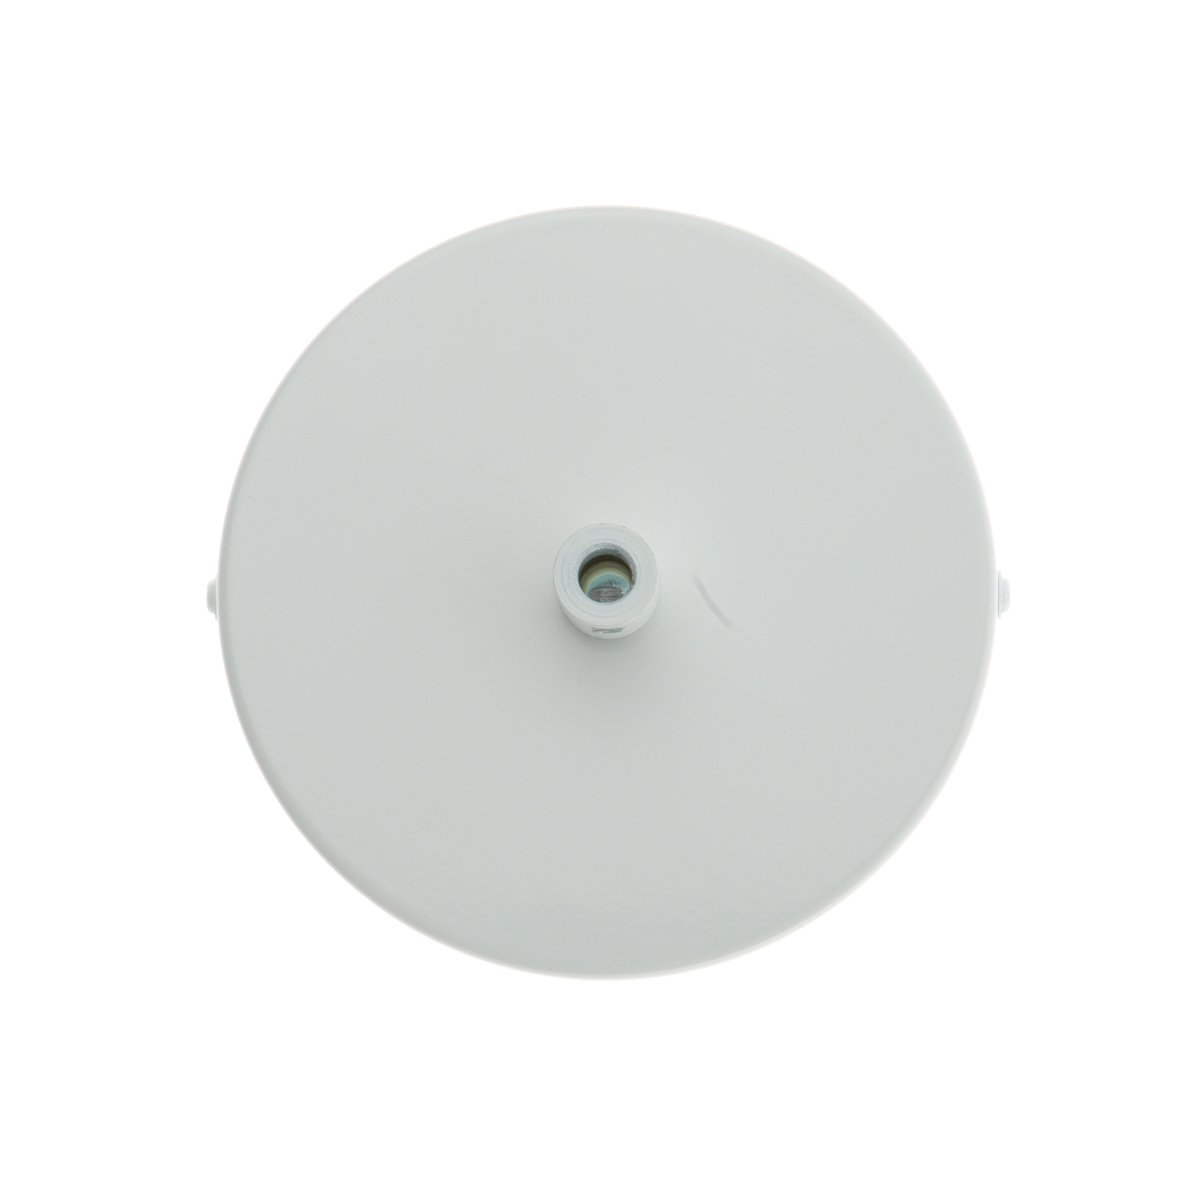 Ceiling Canopy & Conversion Kit - Single Port   Color Cord Company